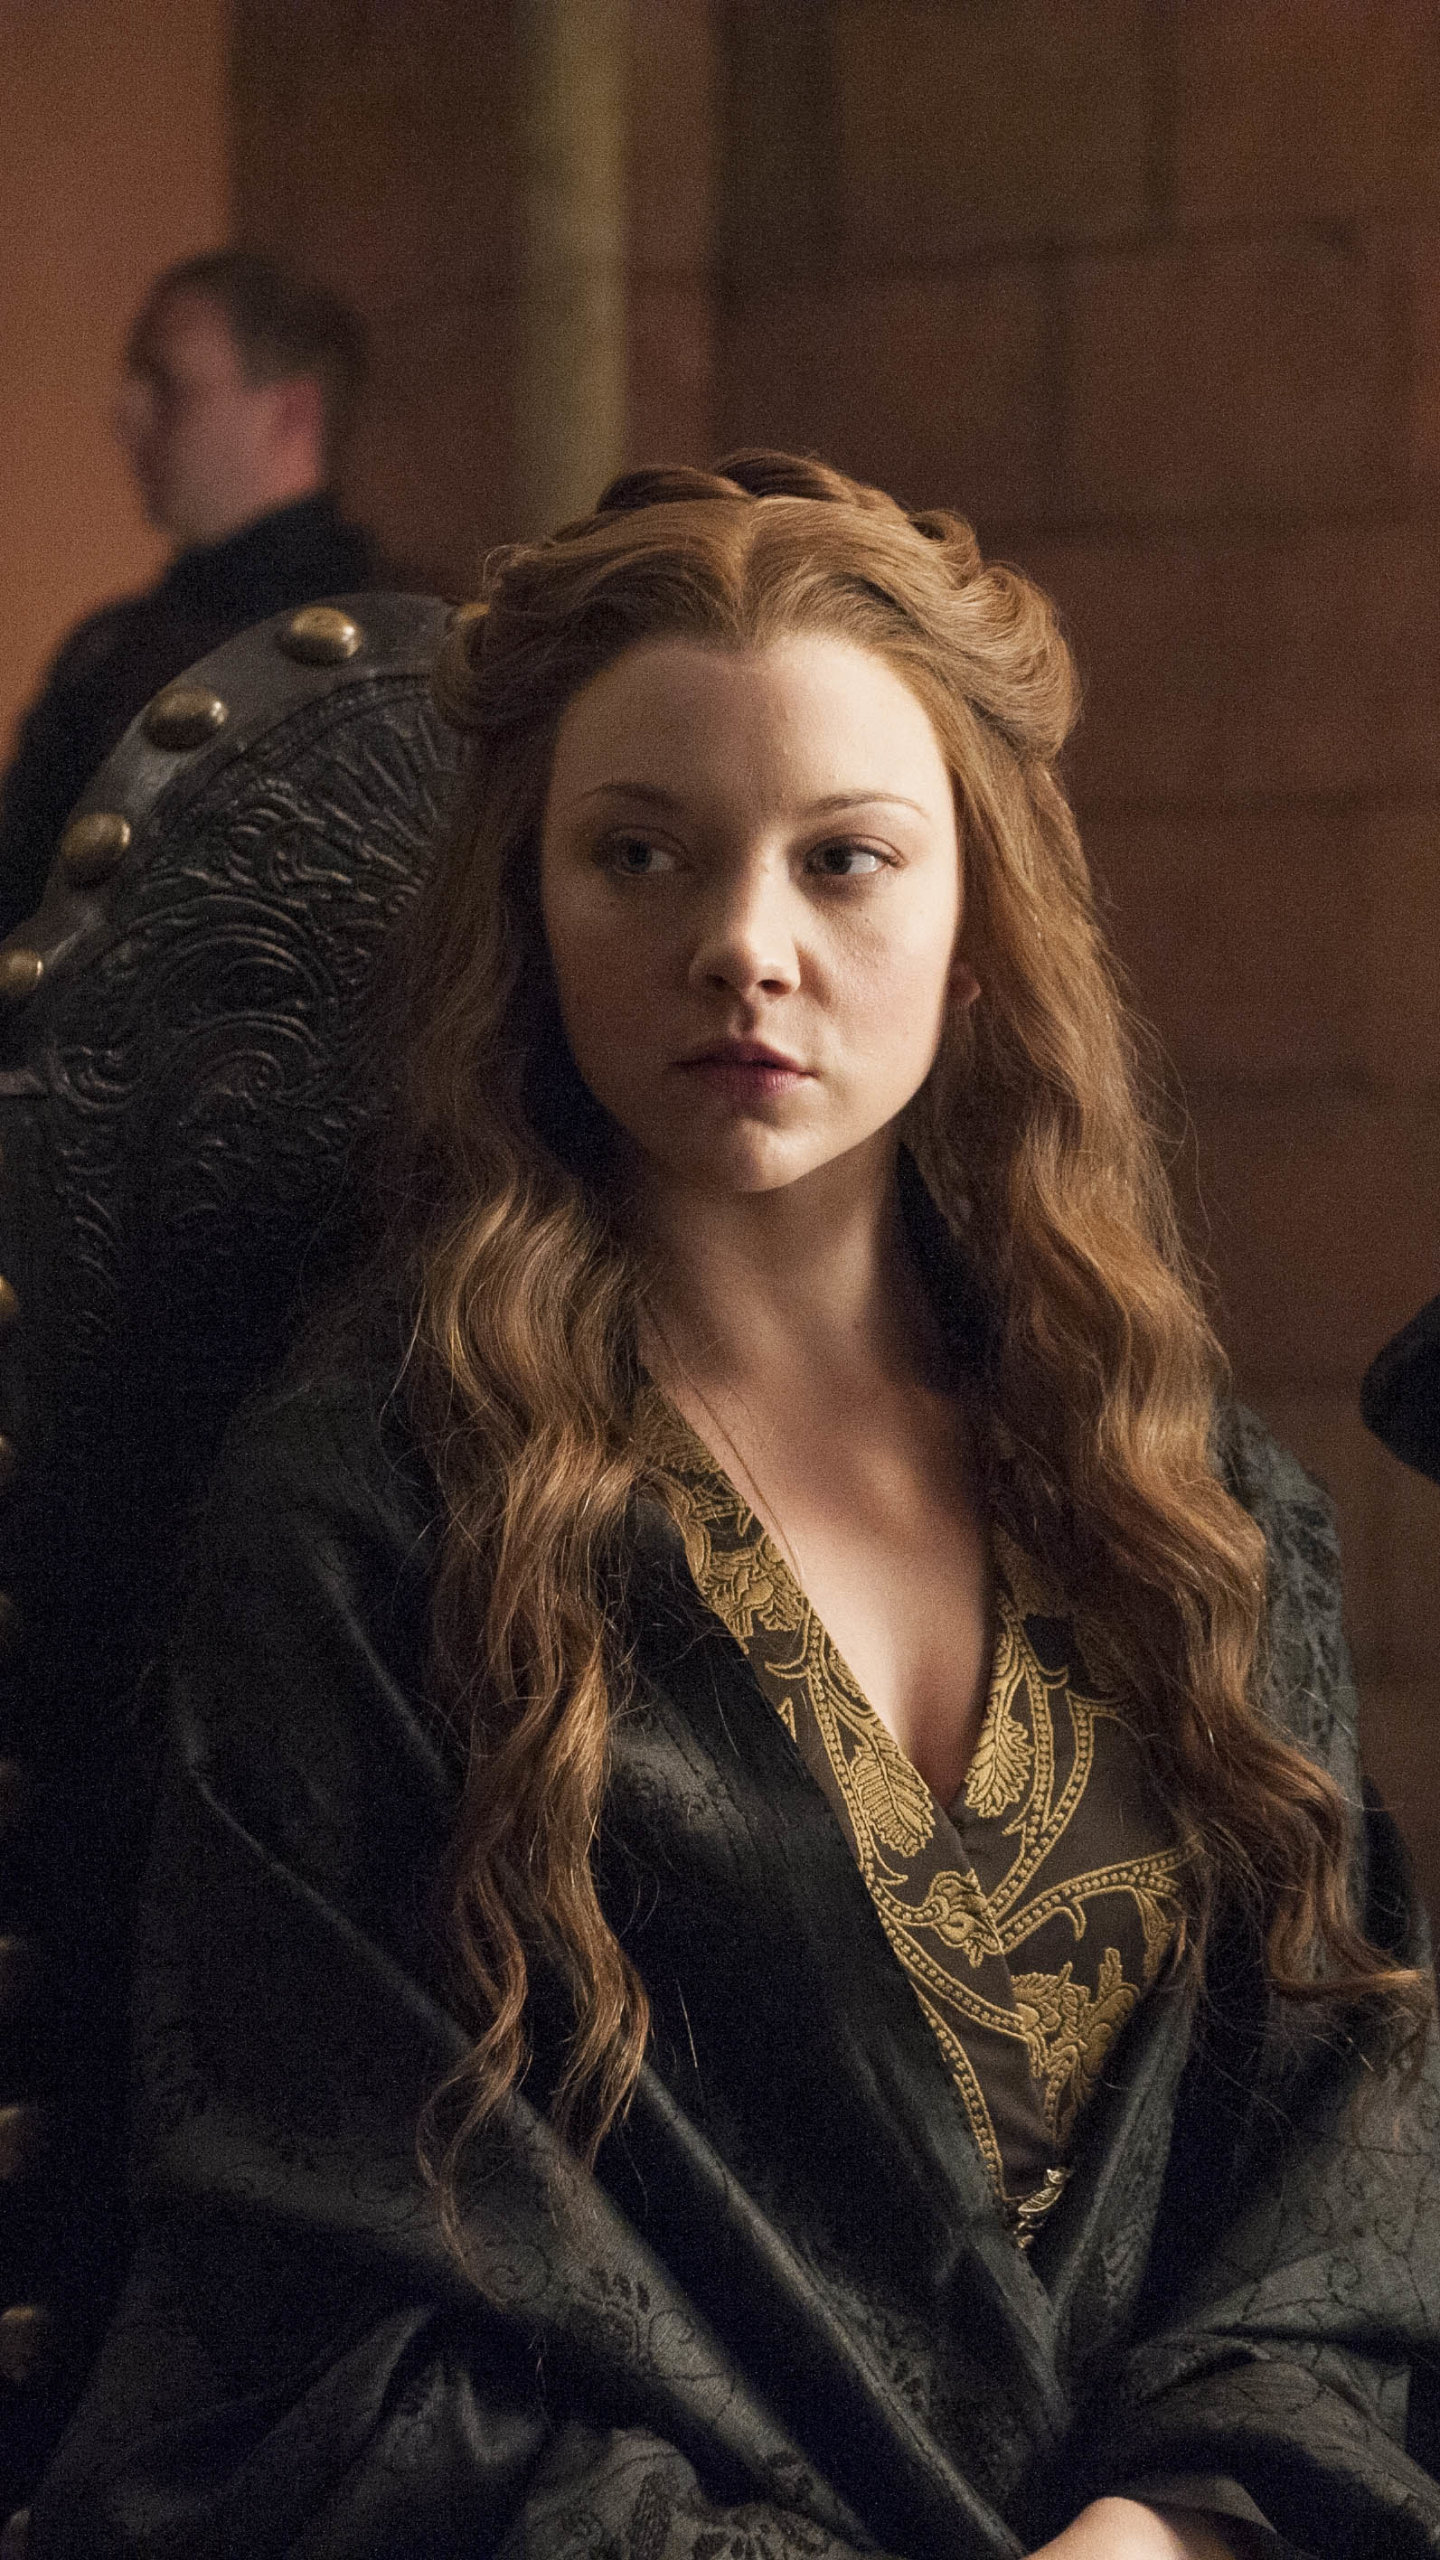 Tv Show Game Of Thrones 1440x2560 Wallpaper Id 790563 Mobile